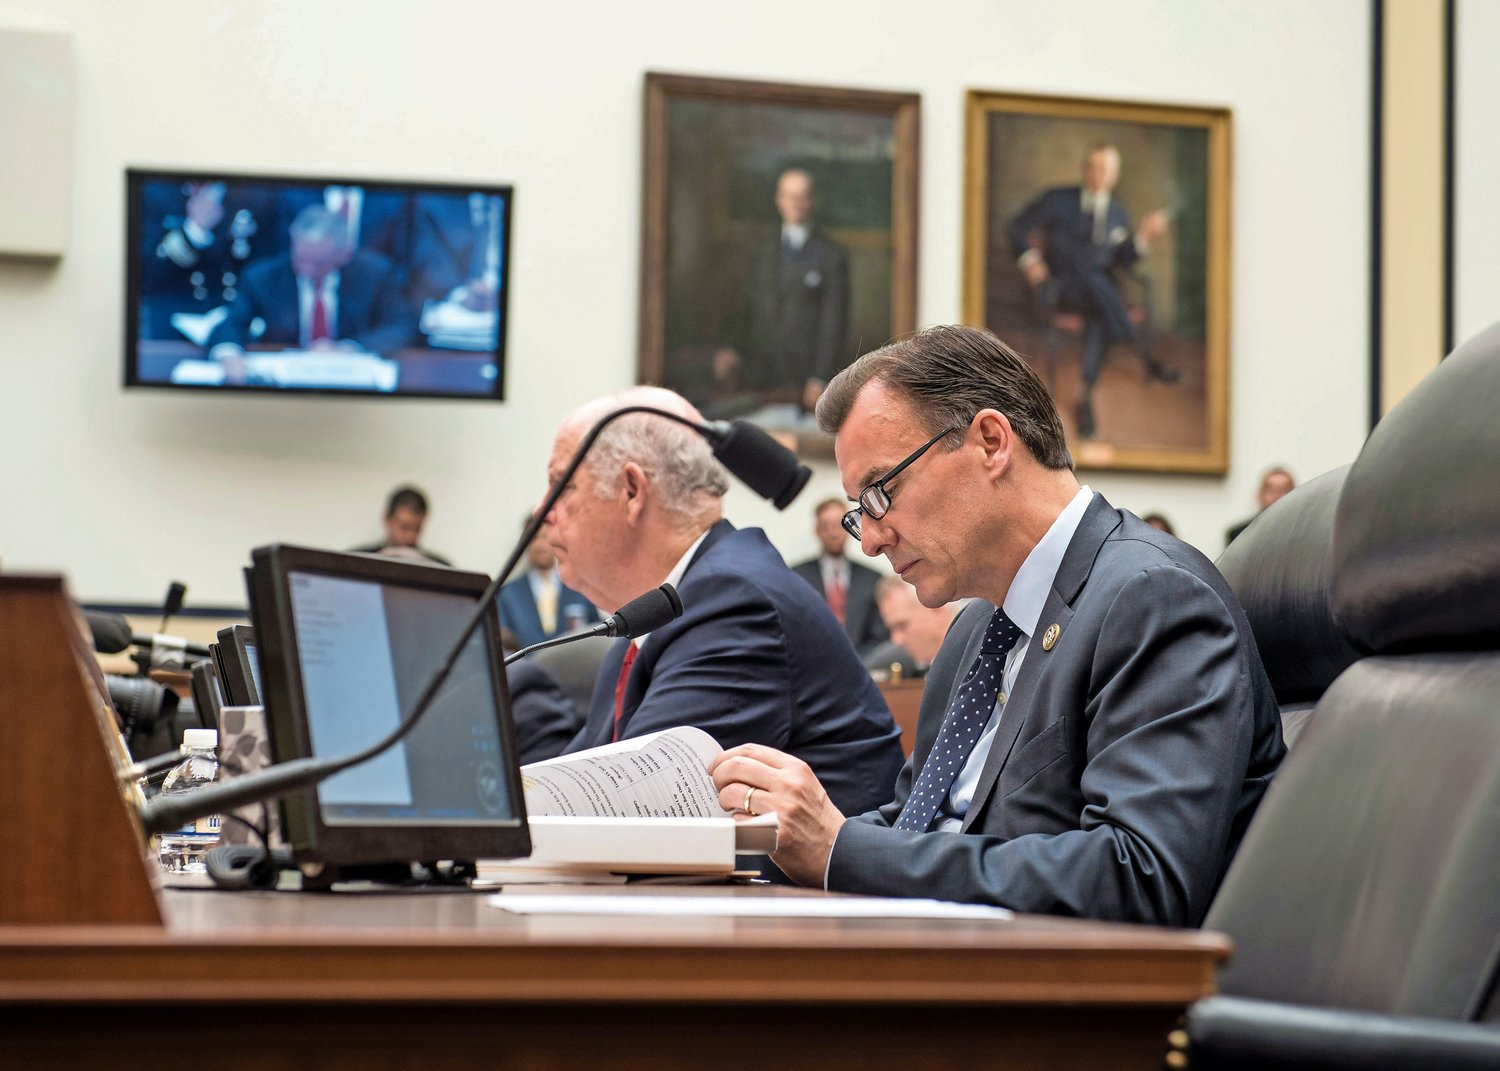 U.S. Rep. Tom Suozzi in Washington during a House Armed Services Committee hearing in June 2017. His recent appointment to the House Ways and Means Committee means that he cannot serve on any other committees.